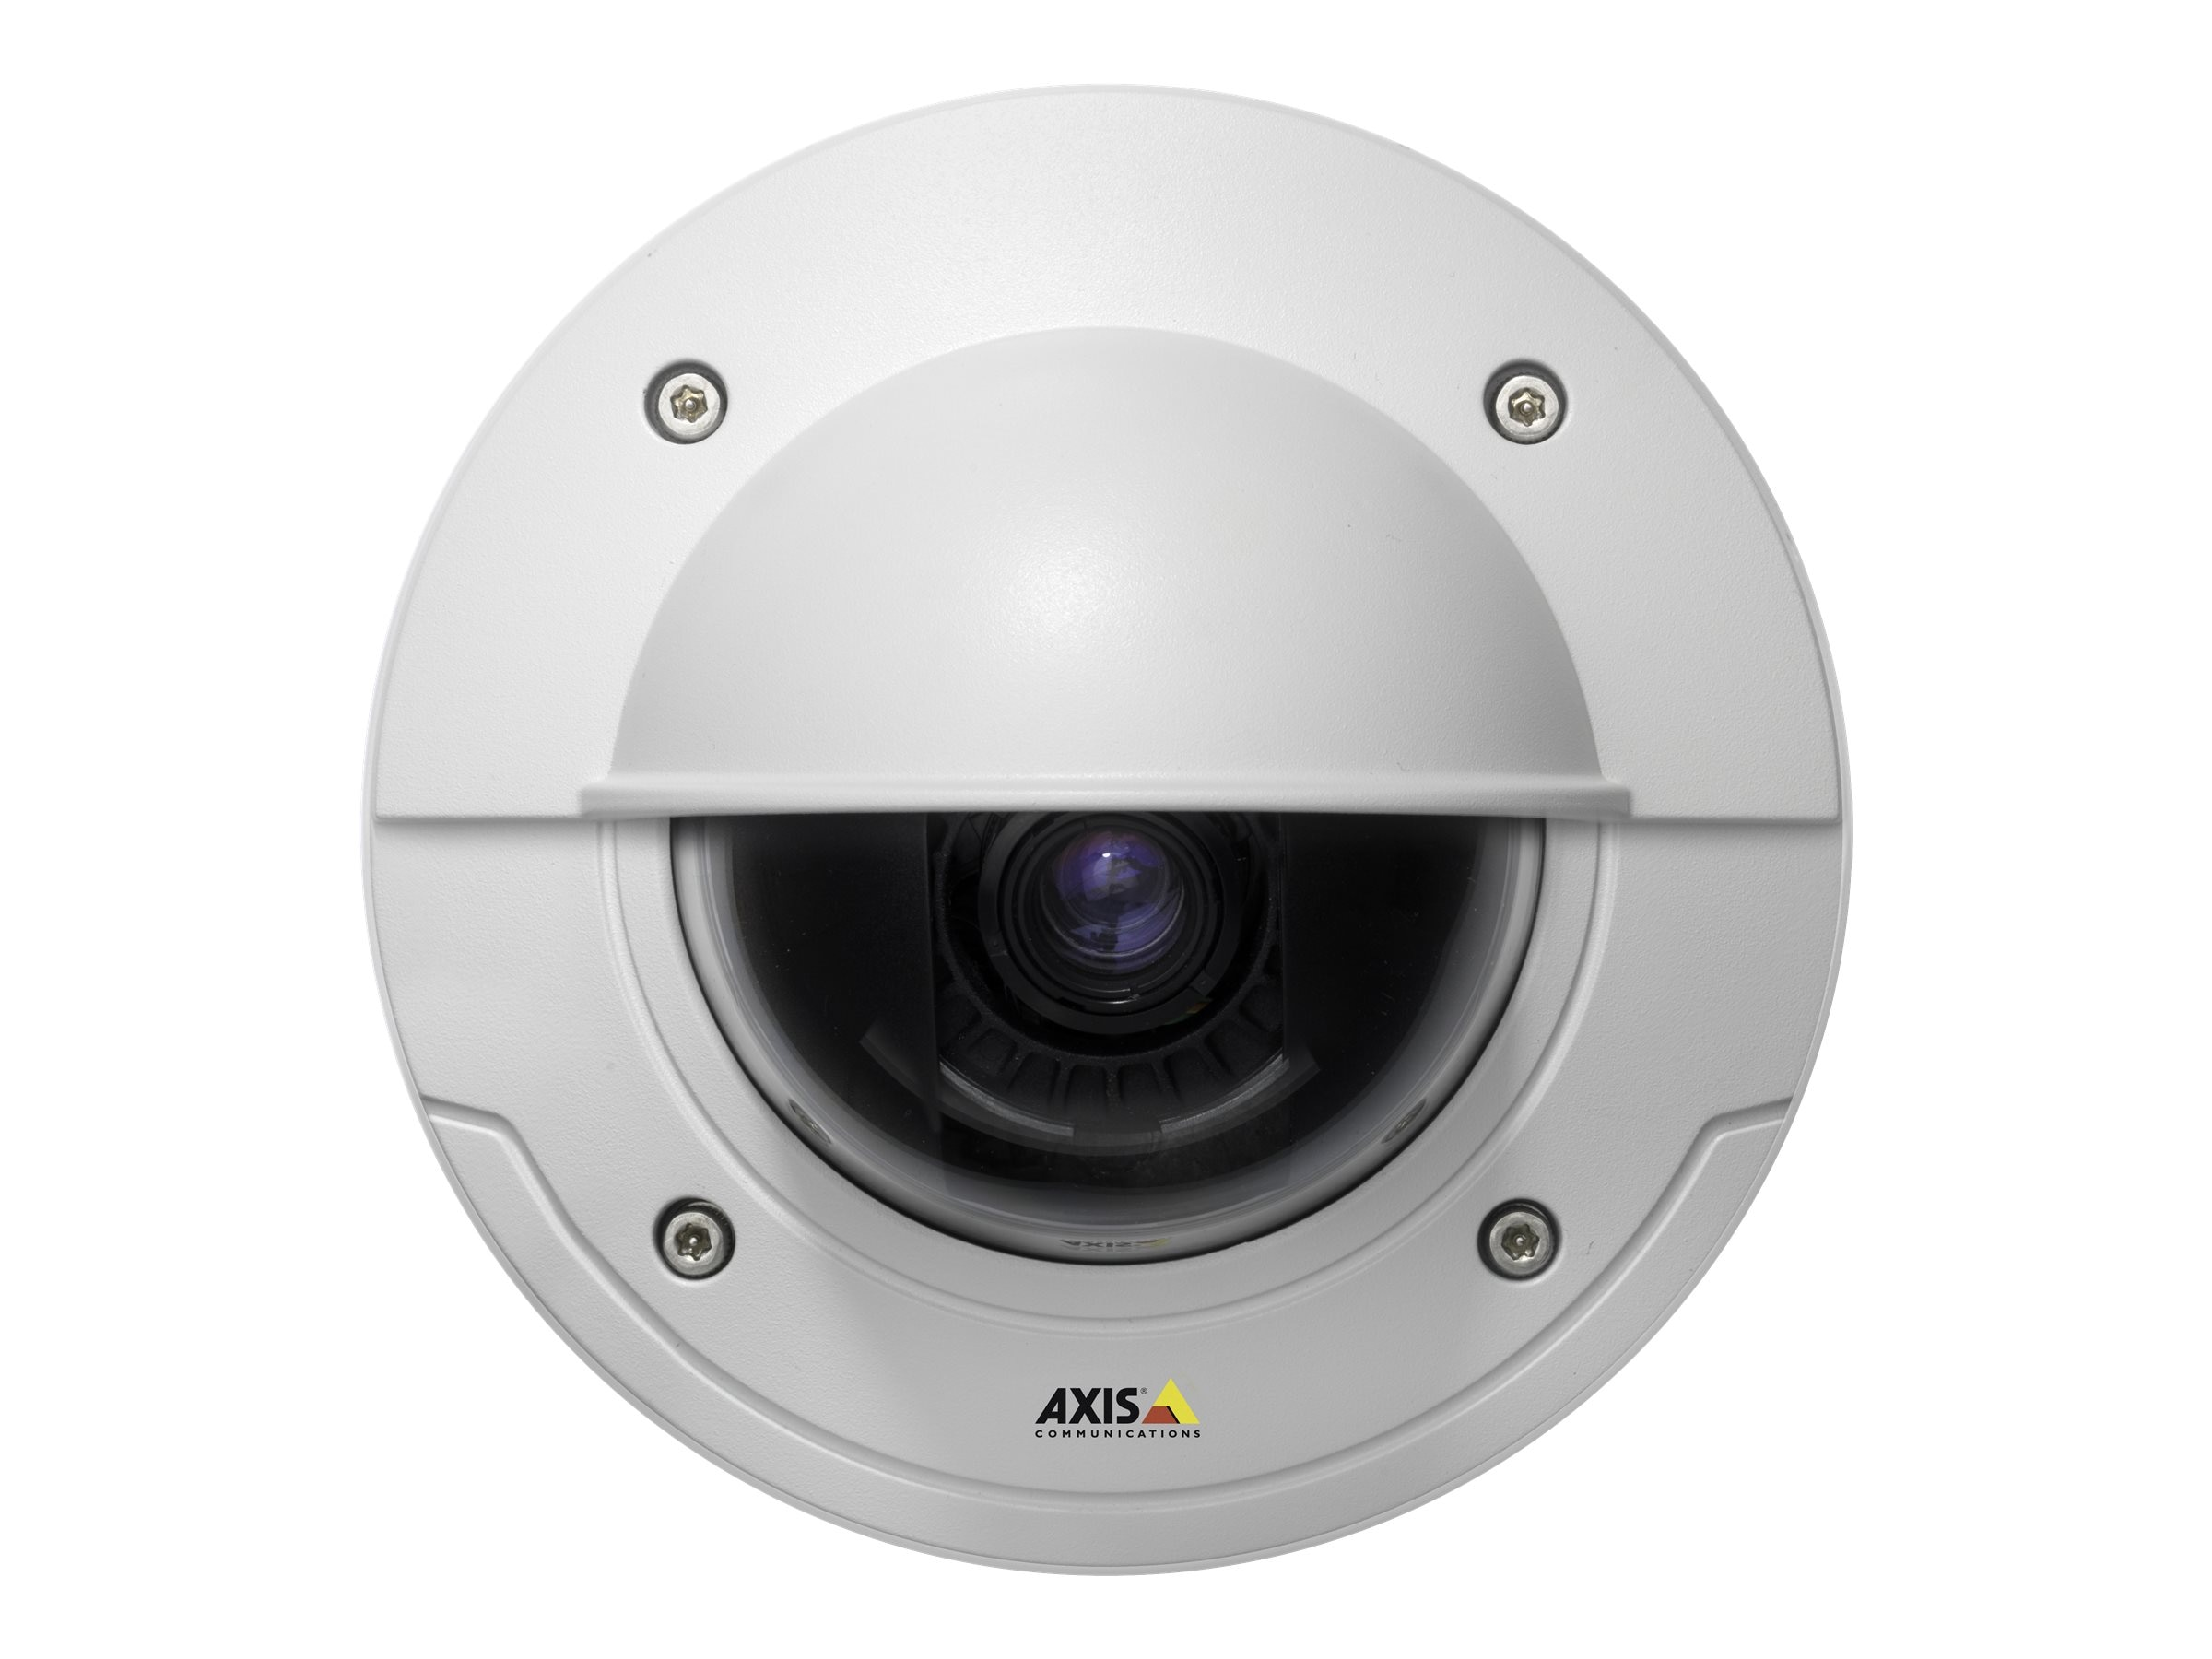 Mediatech P3364-VE Vandal-Resistant Network Camera, MT-17961